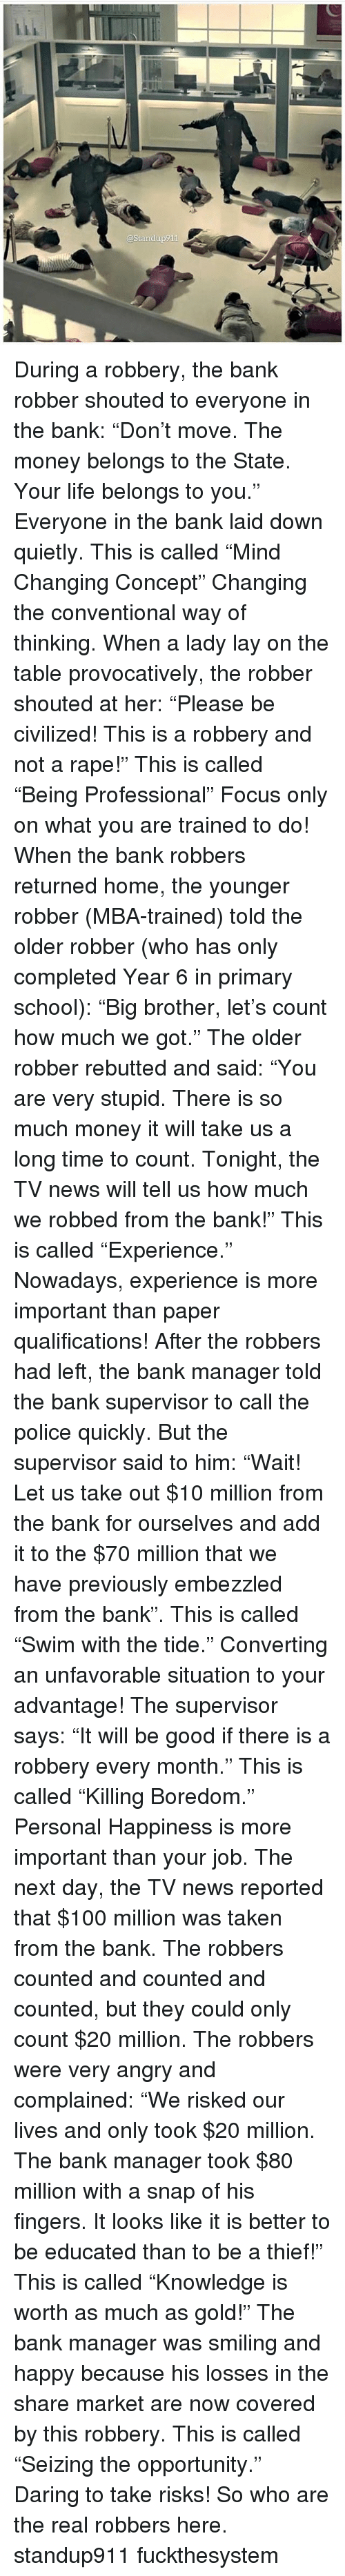 """layed: @Standup911 During a robbery, the bank robber shouted to everyone in the bank: """"Don't move. The money belongs to the State. Your life belongs to you."""" Everyone in the bank laid down quietly. This is called """"Mind Changing Concept"""" Changing the conventional way of thinking. When a lady lay on the table provocatively, the robber shouted at her: """"Please be civilized! This is a robbery and not a rape!"""" This is called """"Being Professional"""" Focus only on what you are trained to do! When the bank robbers returned home, the younger robber (MBA-trained) told the older robber (who has only completed Year 6 in primary school): """"Big brother, let's count how much we got."""" The older robber rebutted and said: """"You are very stupid. There is so much money it will take us a long time to count. Tonight, the TV news will tell us how much we robbed from the bank!"""" This is called """"Experience."""" Nowadays, experience is more important than paper qualifications! After the robbers had left, the bank manager told the bank supervisor to call the police quickly. But the supervisor said to him: """"Wait! Let us take out $10 million from the bank for ourselves and add it to the $70 million that we have previously embezzled from the bank"""". This is called """"Swim with the tide."""" Converting an unfavorable situation to your advantage! The supervisor says: """"It will be good if there is a robbery every month."""" This is called """"Killing Boredom."""" Personal Happiness is more important than your job. The next day, the TV news reported that $100 million was taken from the bank. The robbers counted and counted and counted, but they could only count $20 million. The robbers were very angry and complained: """"We risked our lives and only took $20 million. The bank manager took $80 million with a snap of his fingers. It looks like it is better to be educated than to be a thief!"""" This is called """"Knowledge is worth as much as gold!"""" The bank manager was smiling and happy because his losses in the share market are now c"""